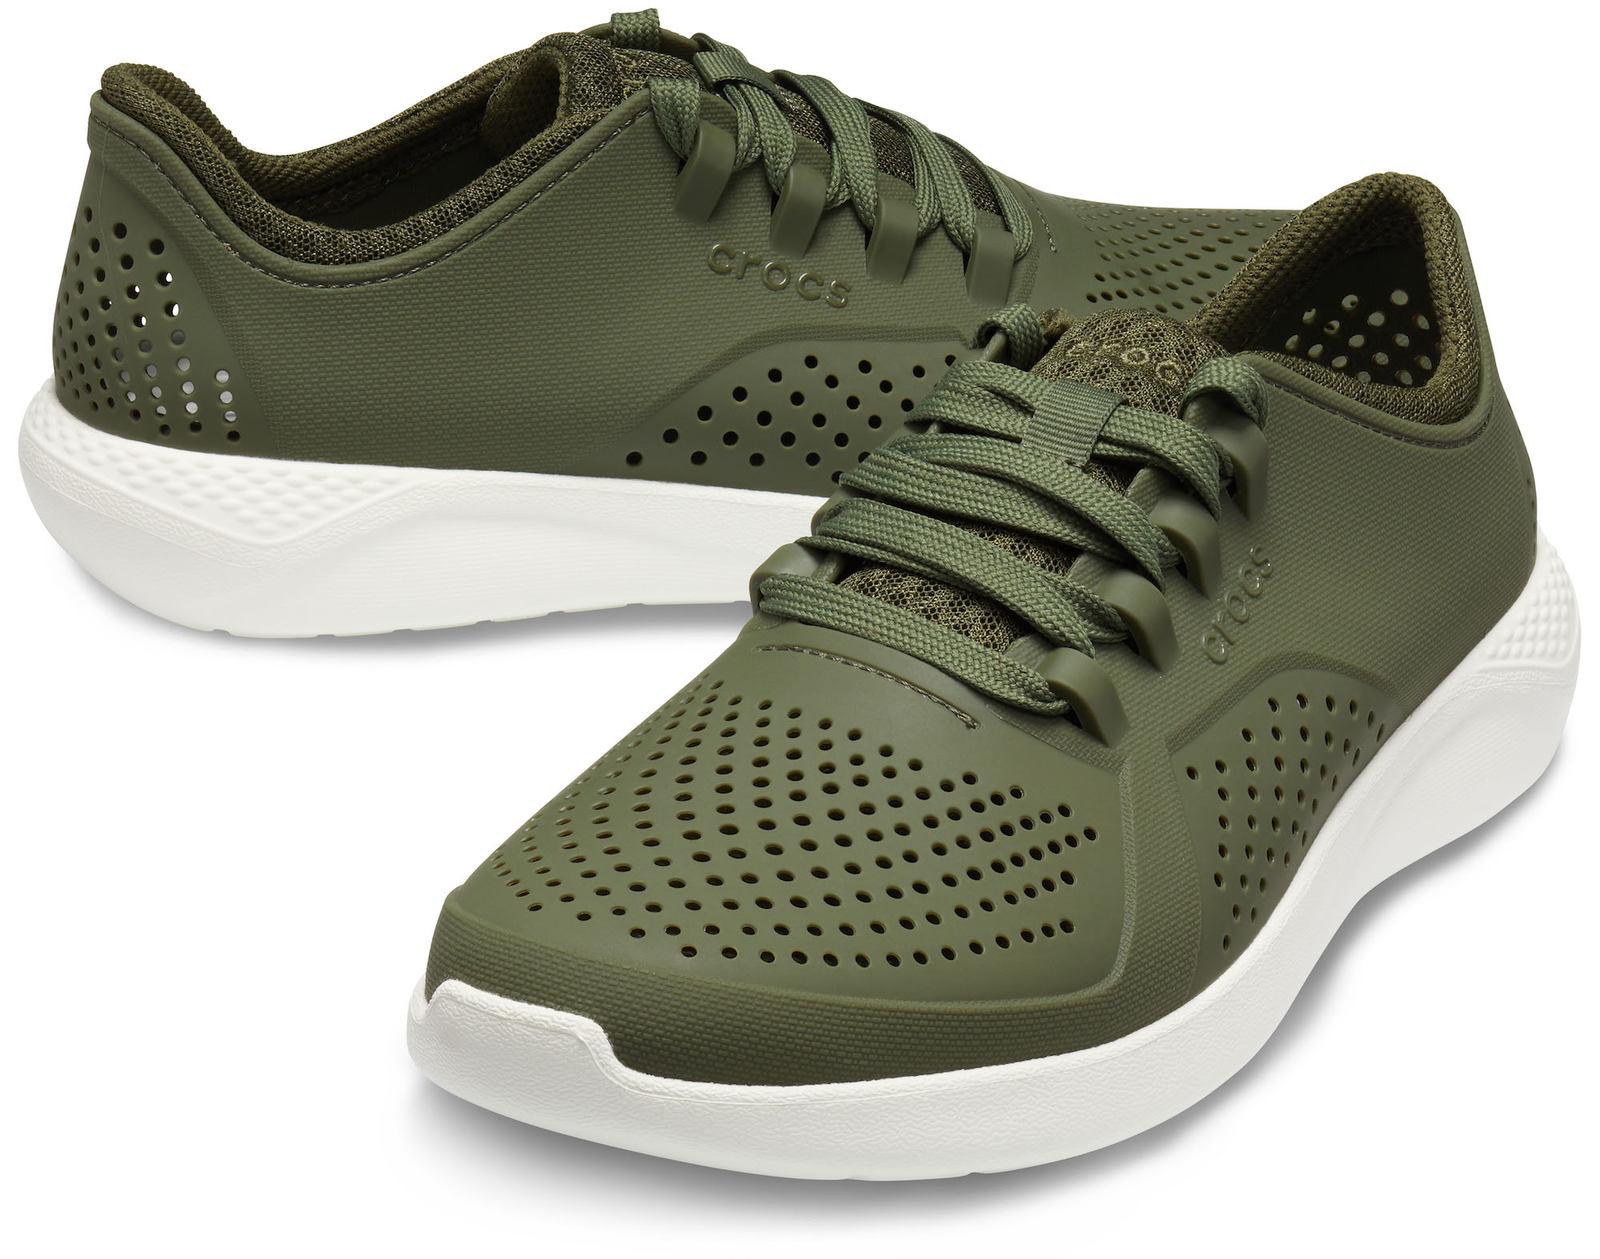 Crocs khaki men´s sneakers LiteRide Pacer Army Green/White